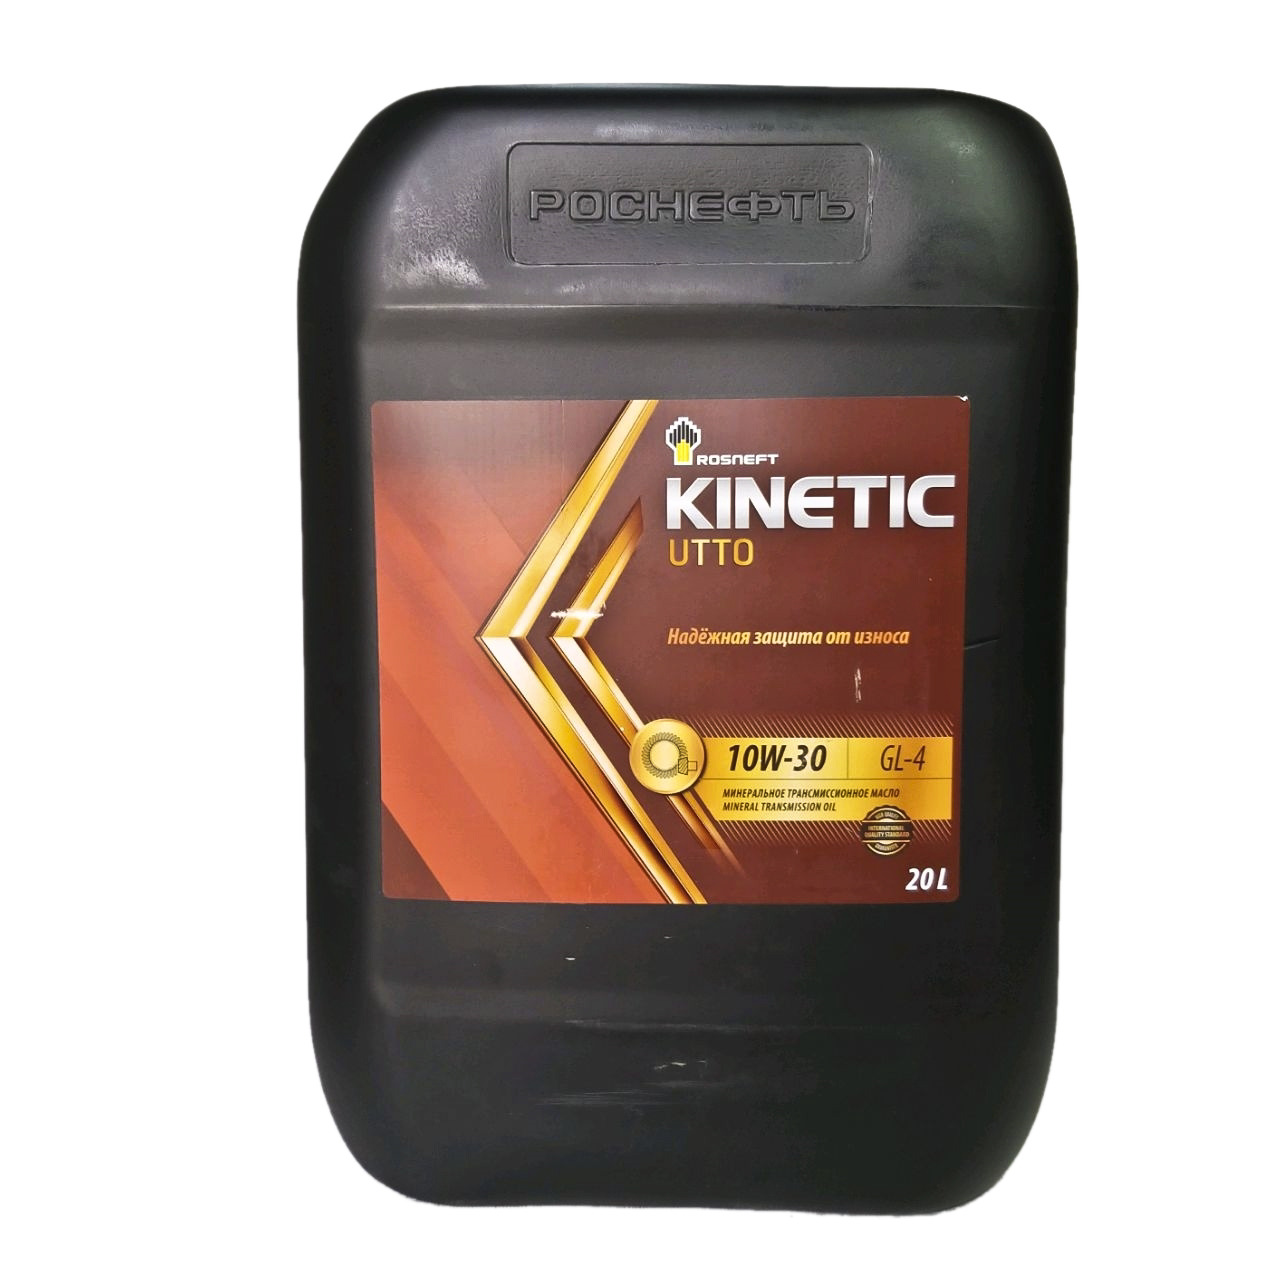 Rosneft Kinetic UTTO 10w-30 (20 L.)